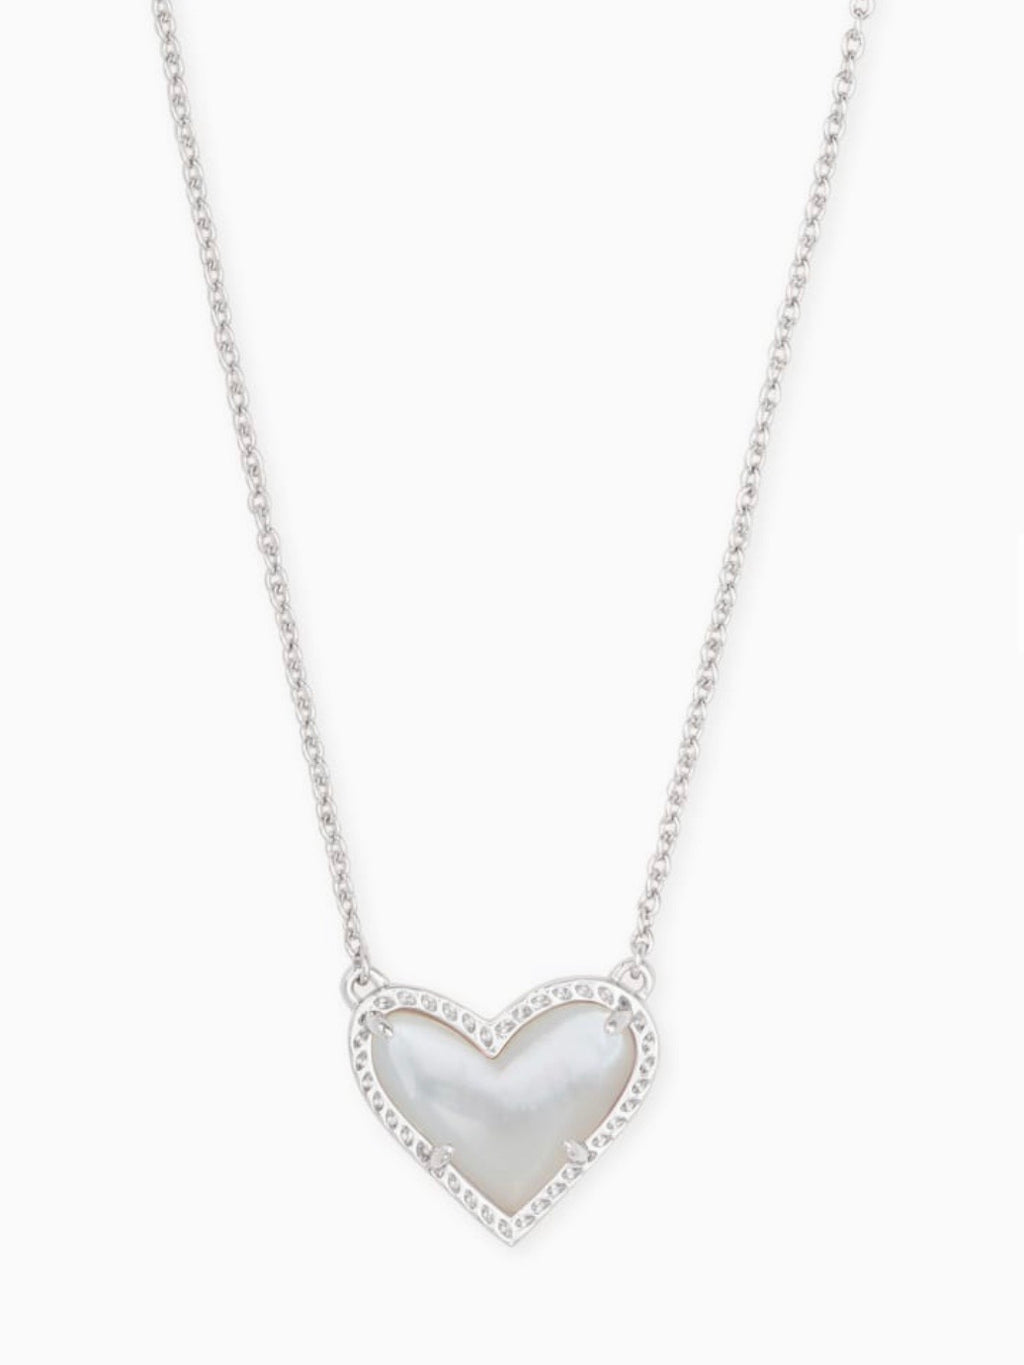 Kendra Scott Heart Necklace- Mother of Pearl